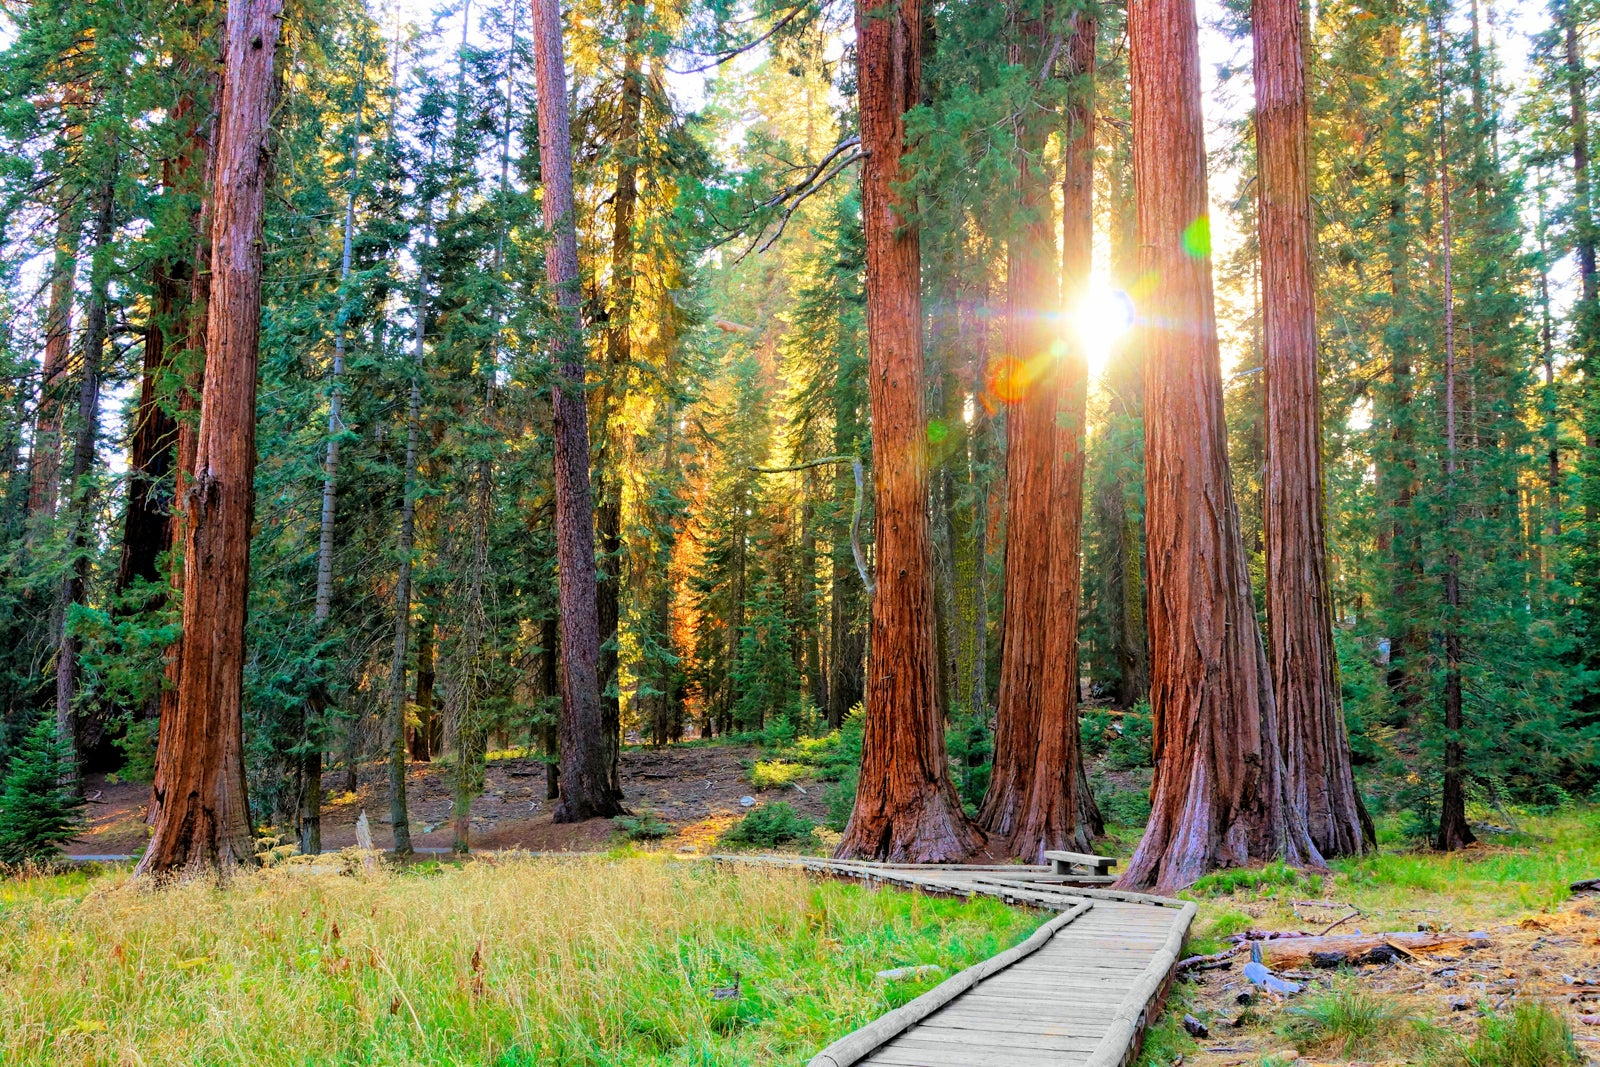 The 19 national parks every traveler needs to see at least once